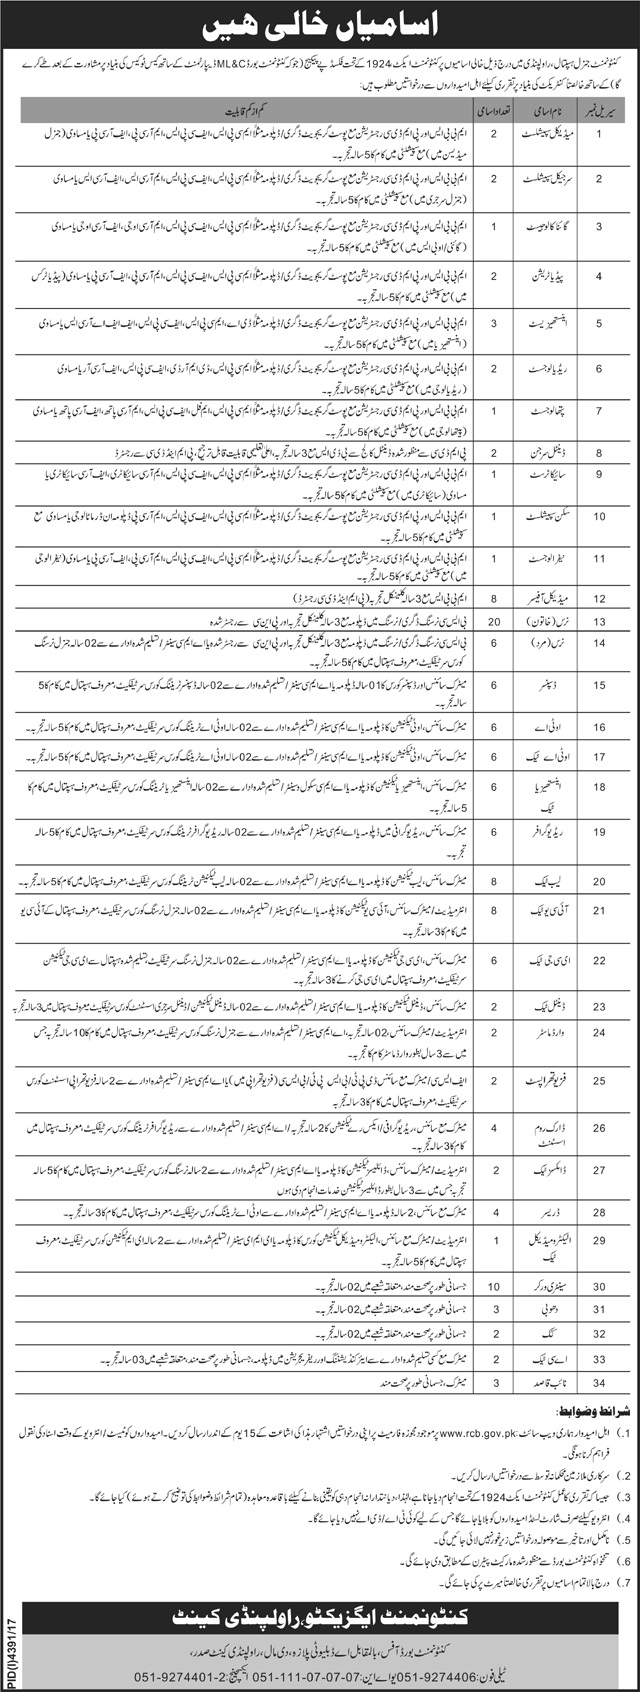 Cantonment General Hospital Rawalpindi 141 Jobs 17th February 2018 in Daily Jang Newspaper